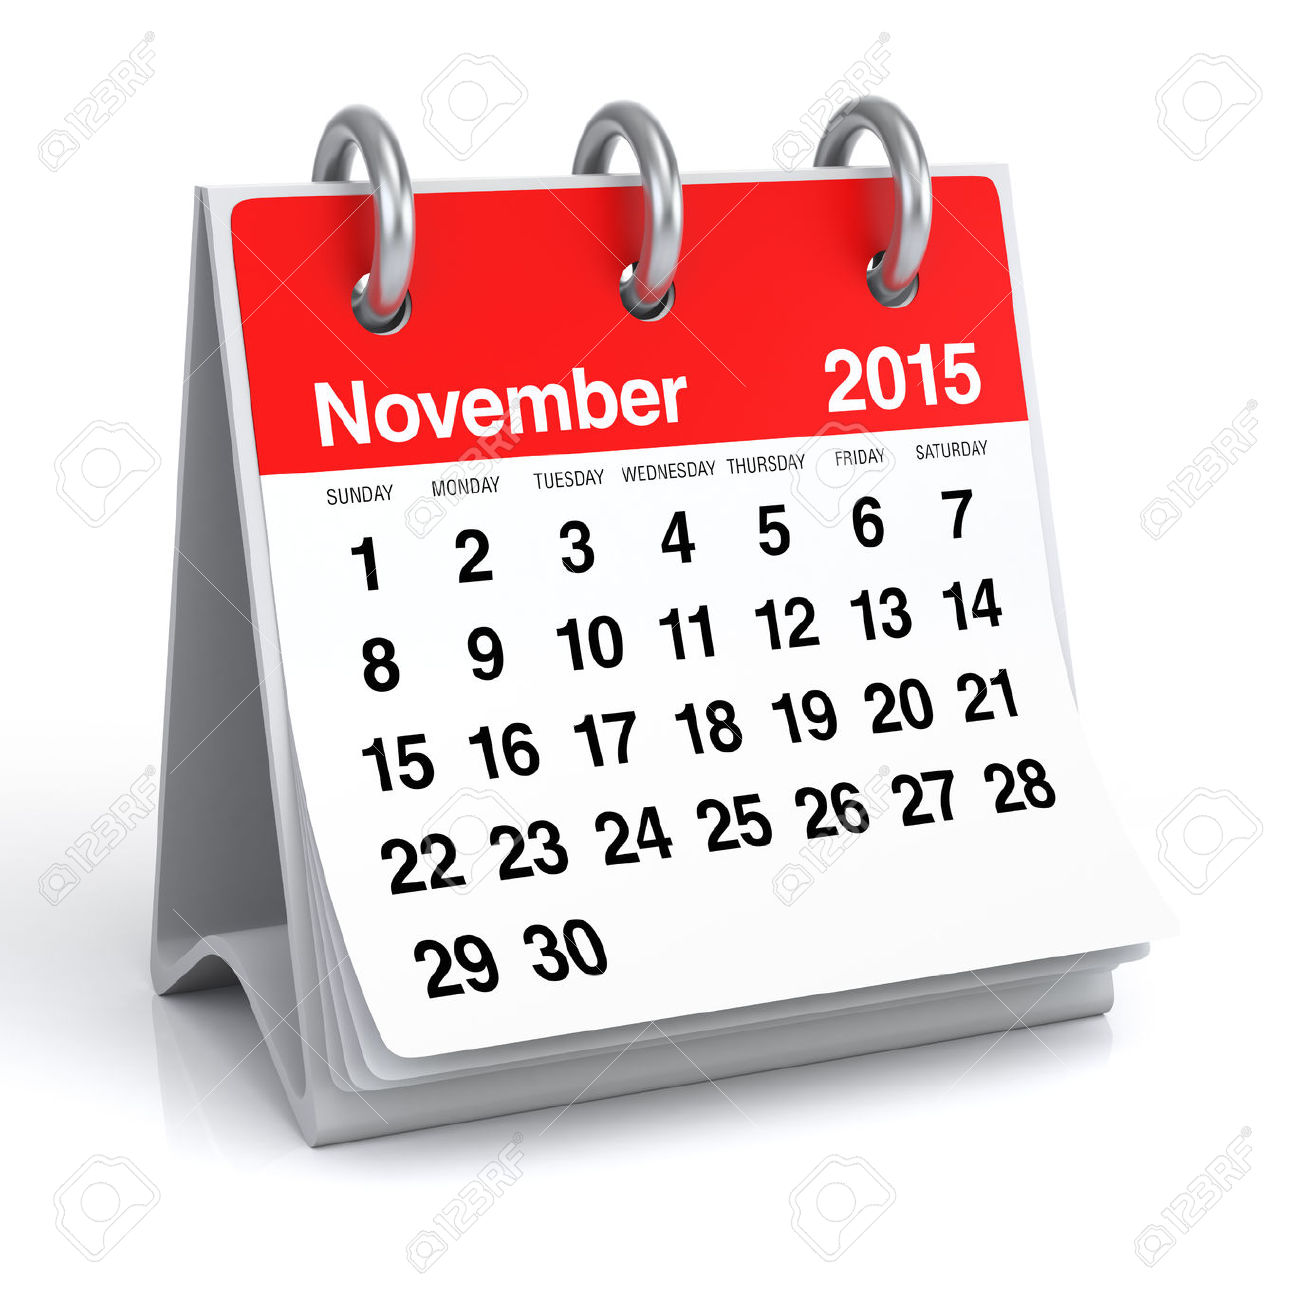 Calendar clipart november 2015 image stock November 2015 - Calendar Stock Photo, Picture And Royalty Free ... image stock